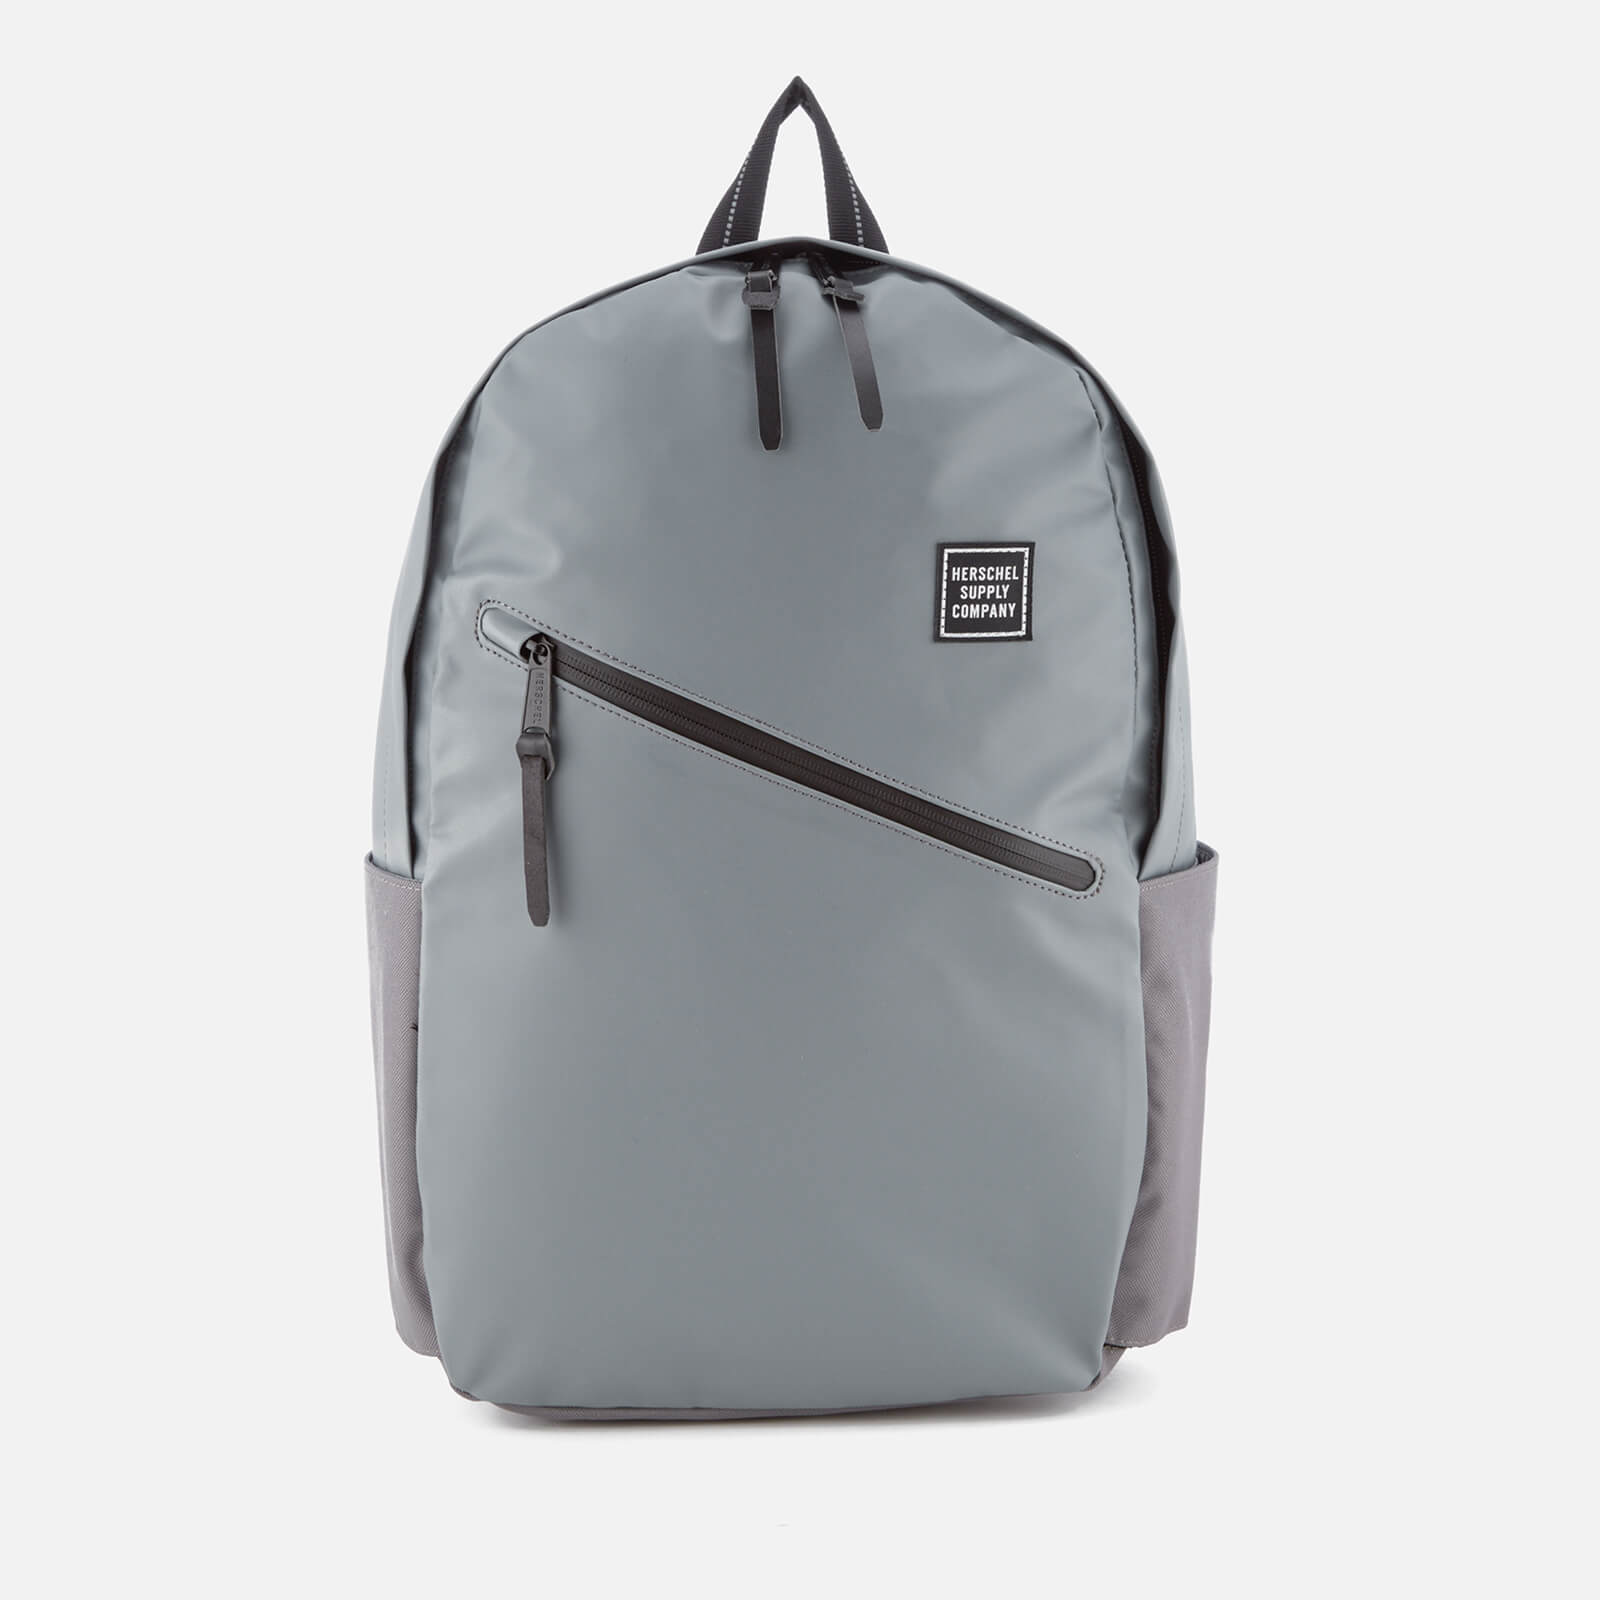 6b670cb4ed7 Herschel Supply Co. Parker Bag - Quite Shade Clothing